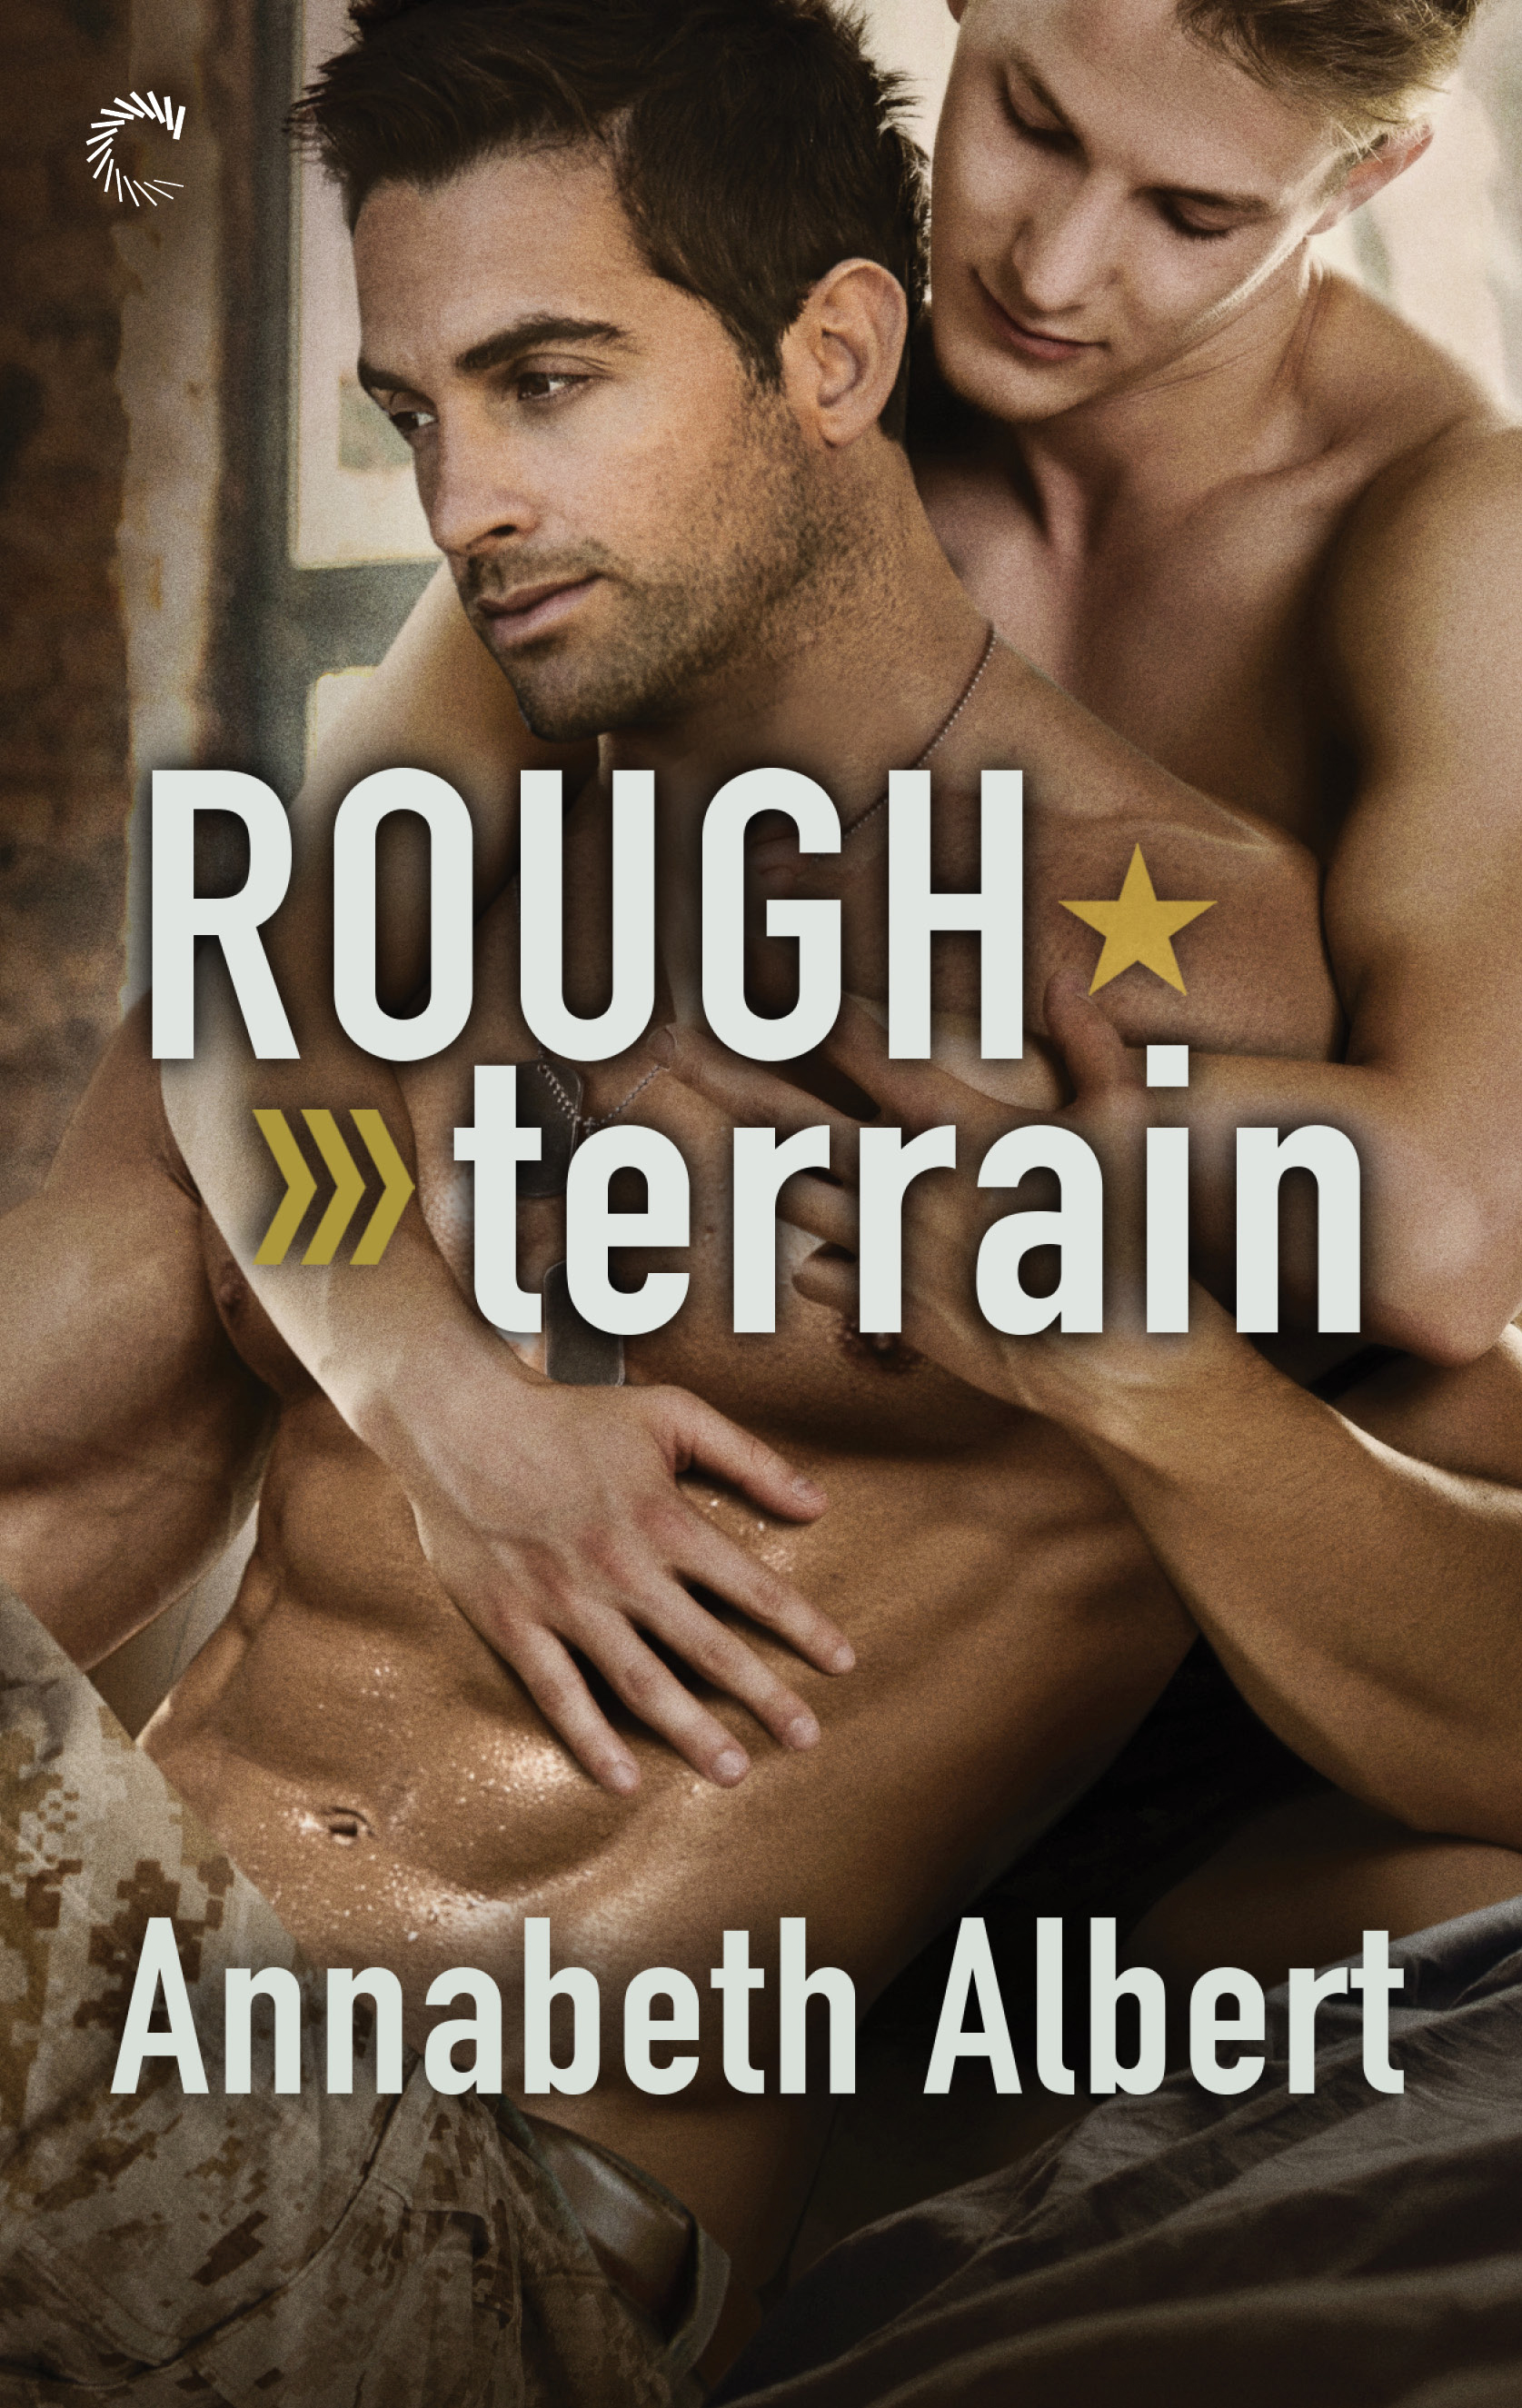 Review: Rough Terrain by Annabeth Albert